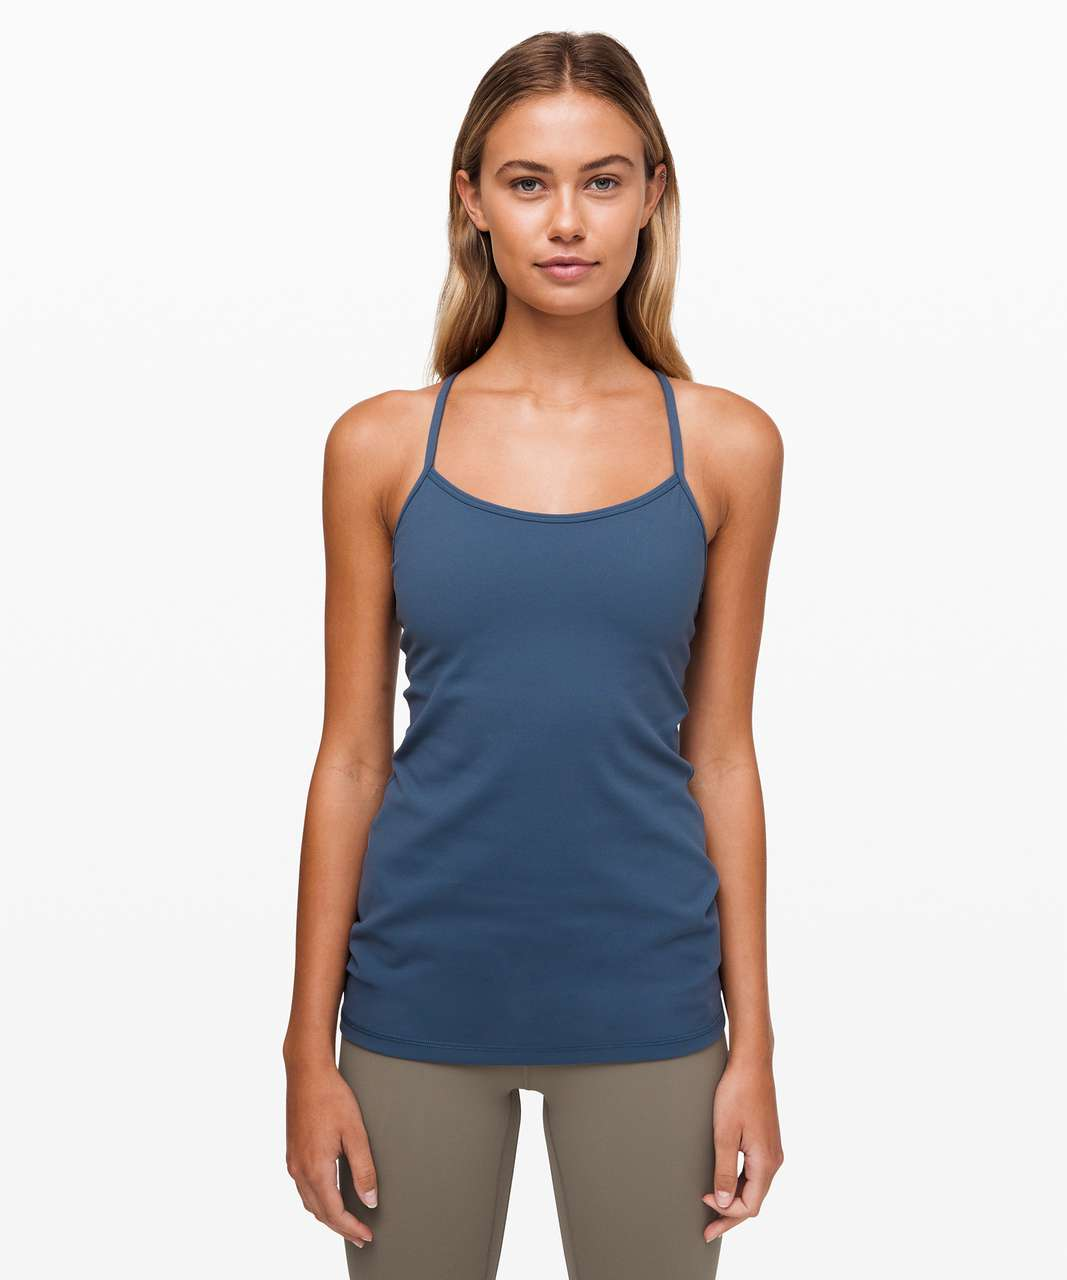 Lululemon Power Y Tank *Luon - Code Blue